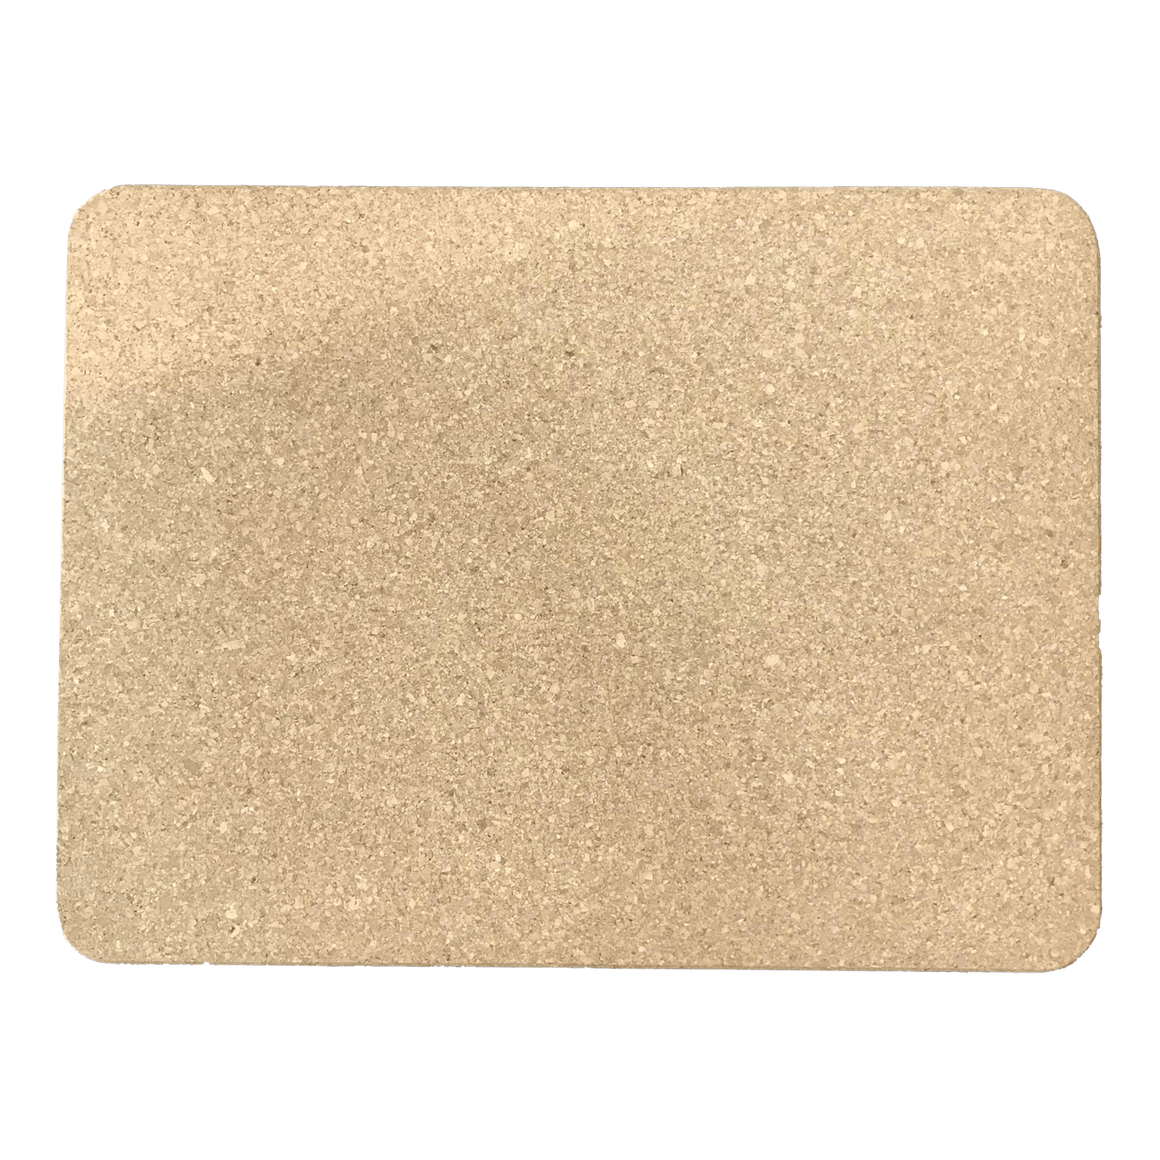 CorkHouse Cork Bath Mat